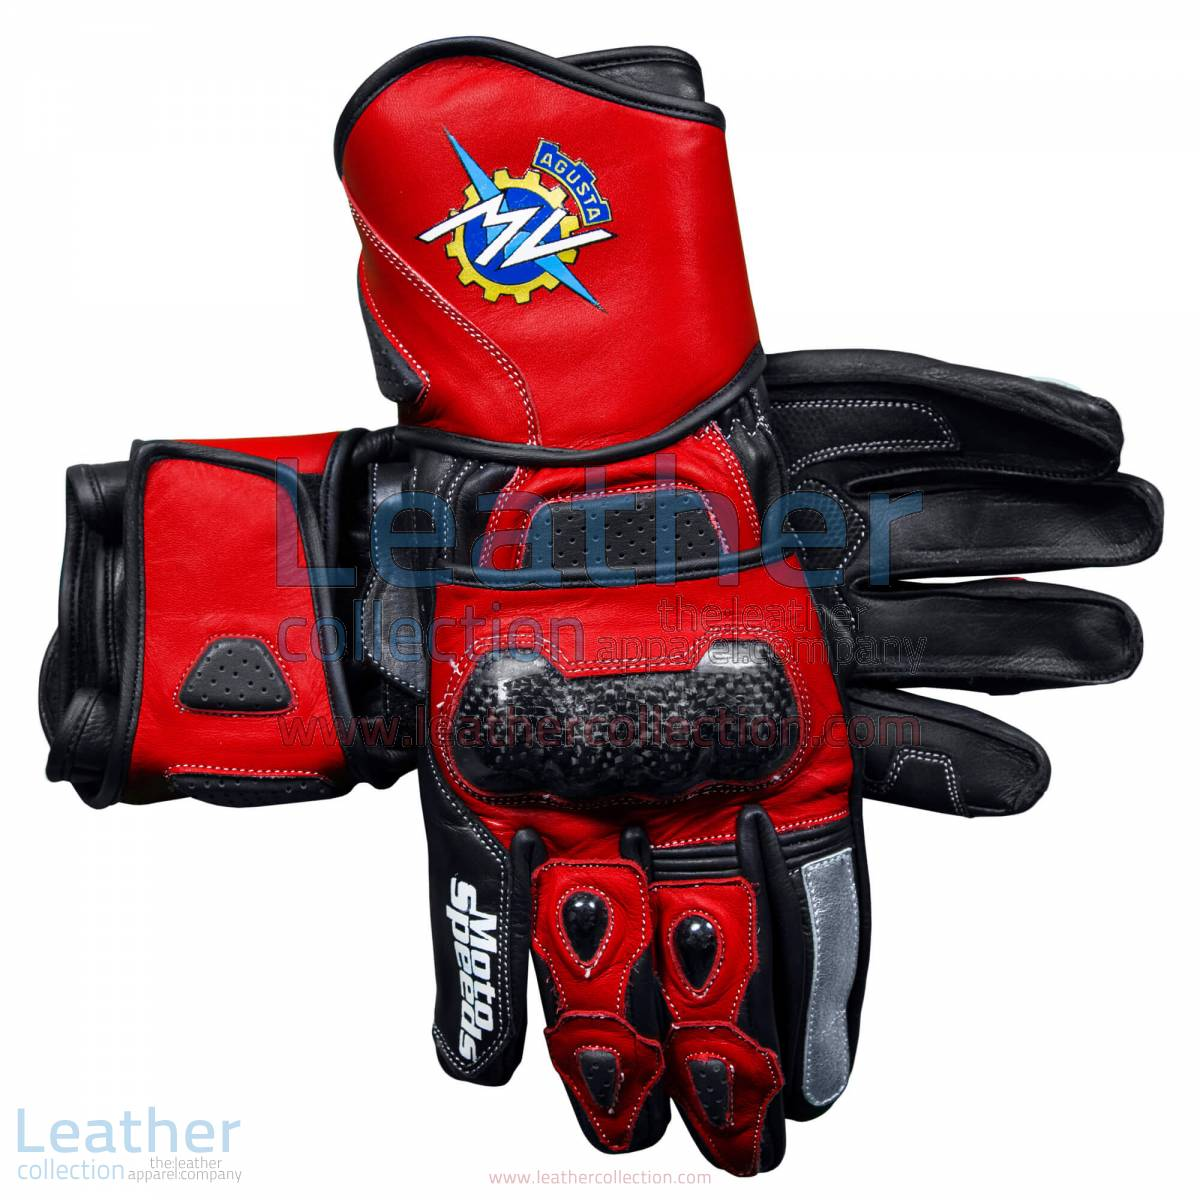 MV Agusta 2017 Leather Motorcycle Gloves | MV Agusta 2017 Leather Motorcycle Gloves